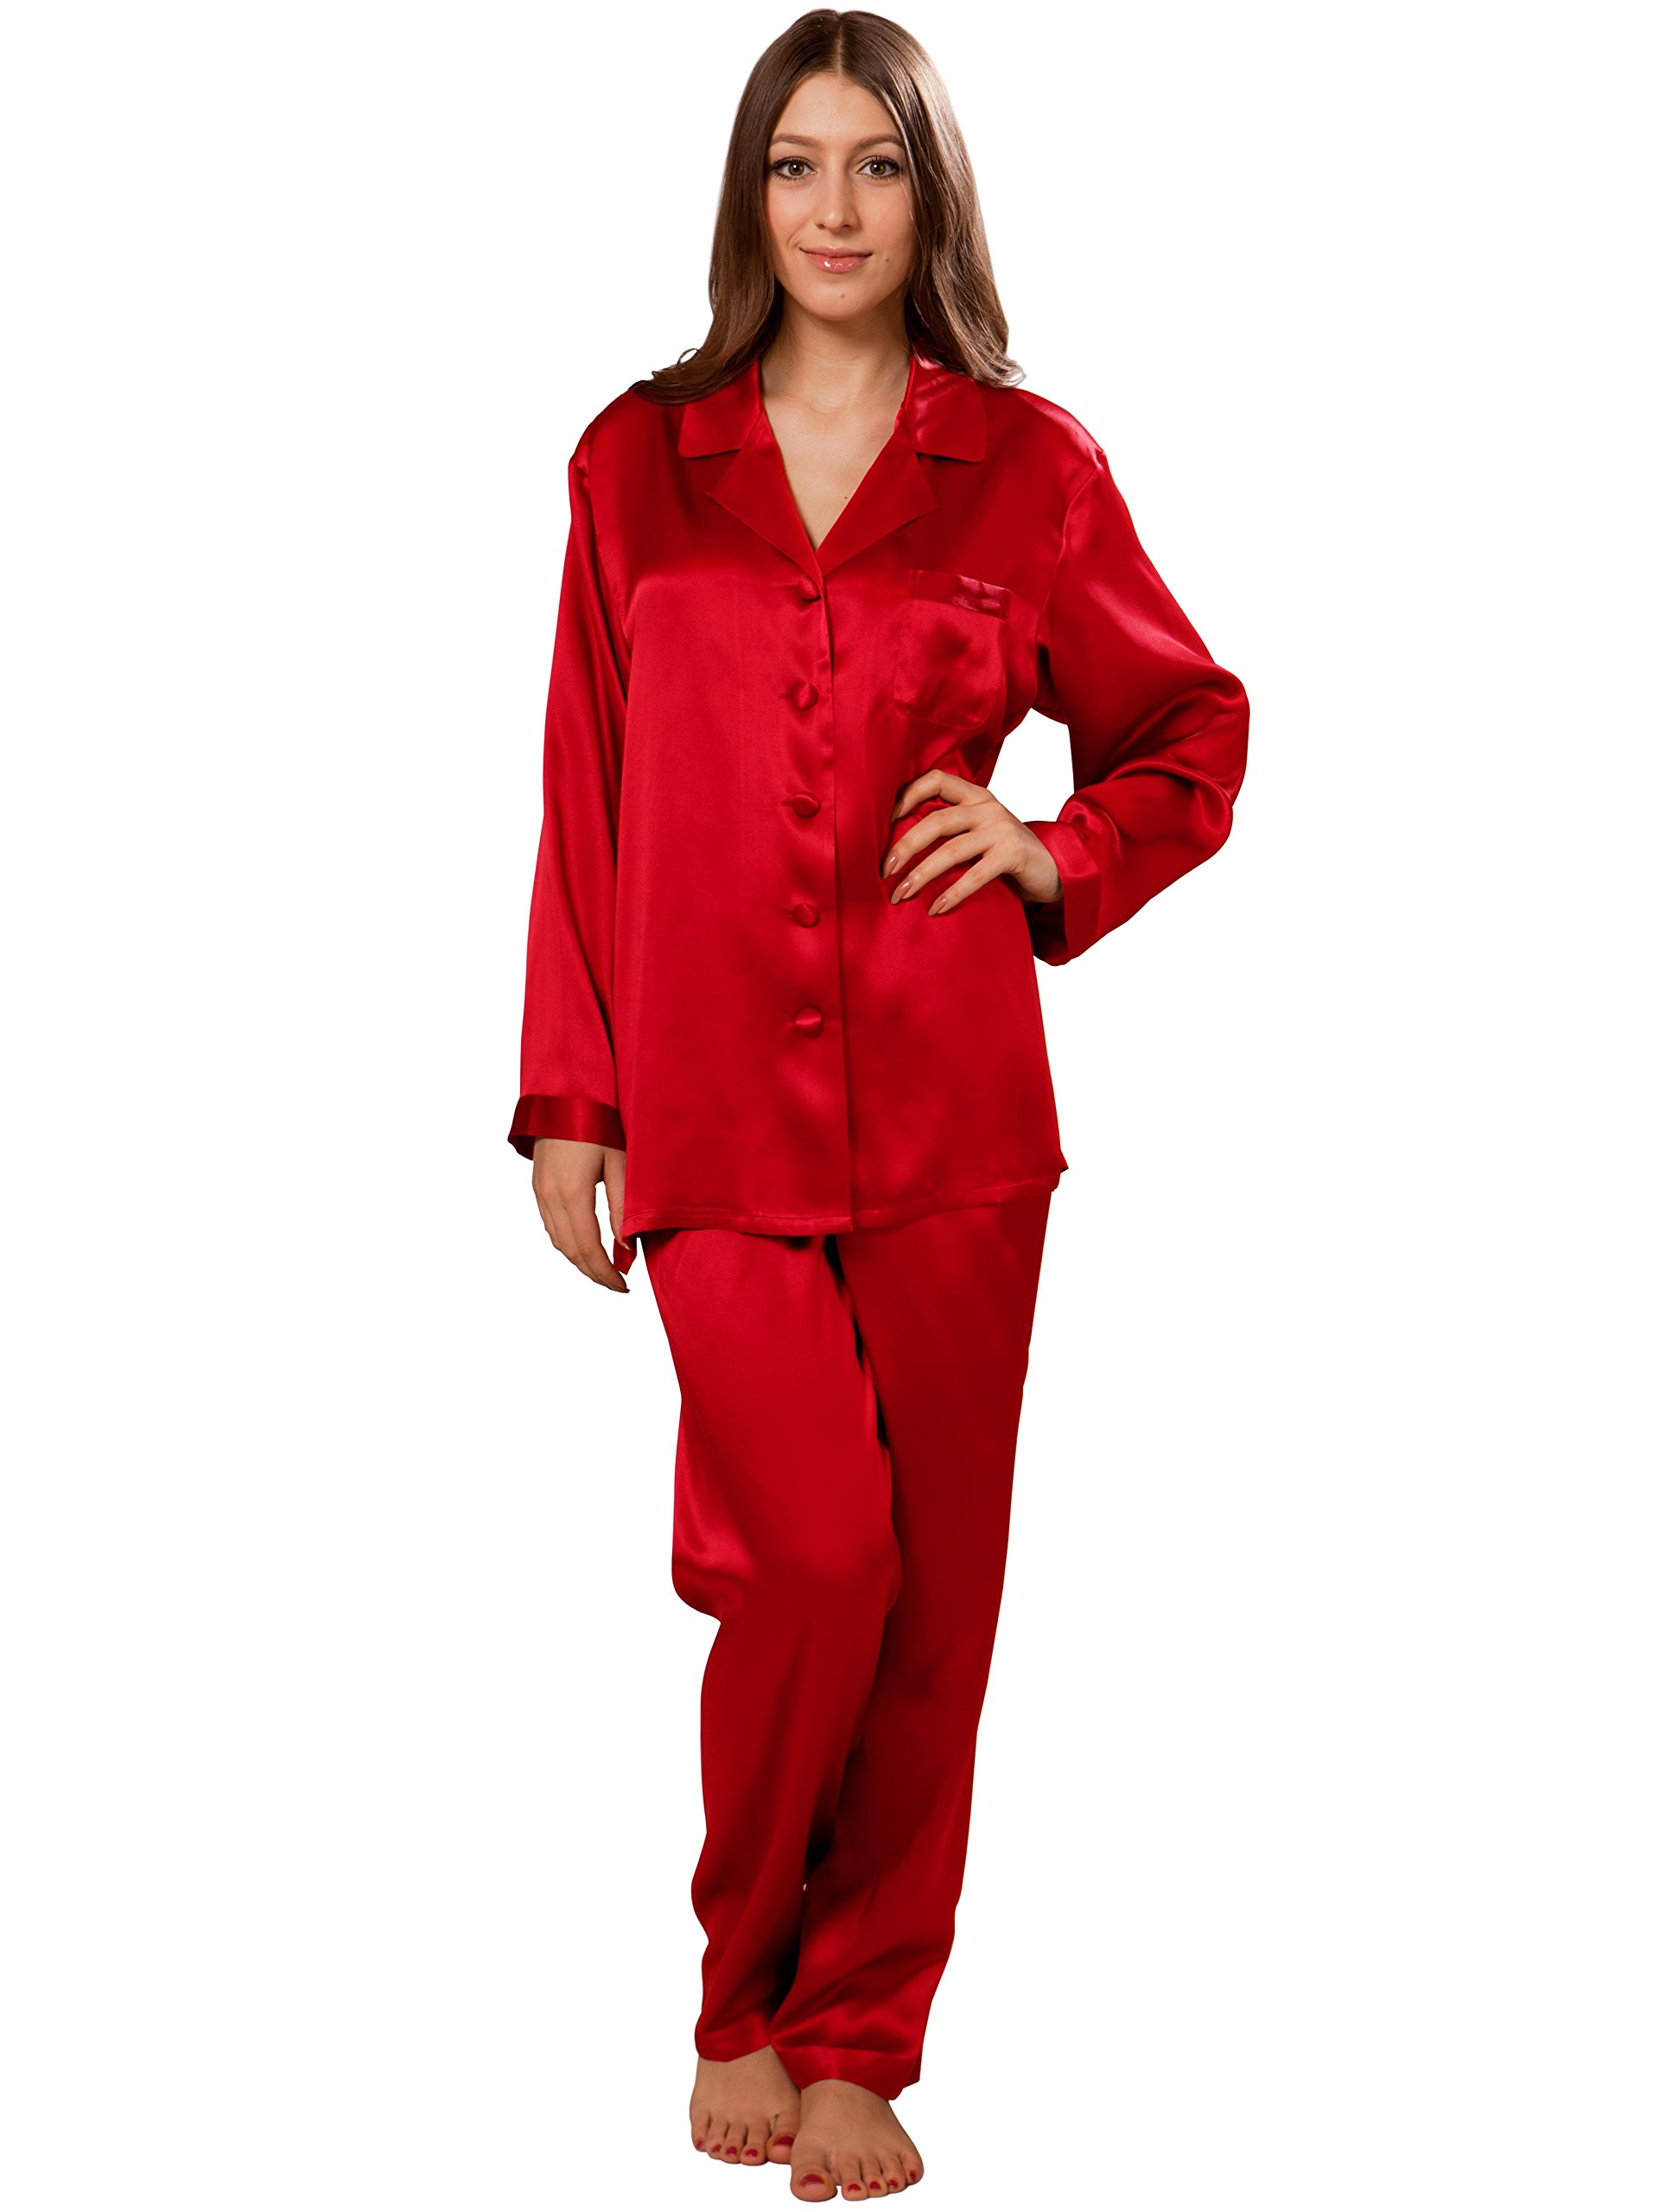 ElleSilk Pajamas For Women, Long Sleeve Silk Sleepwear, Premium Quality Mulberry Silk, Cherry, S